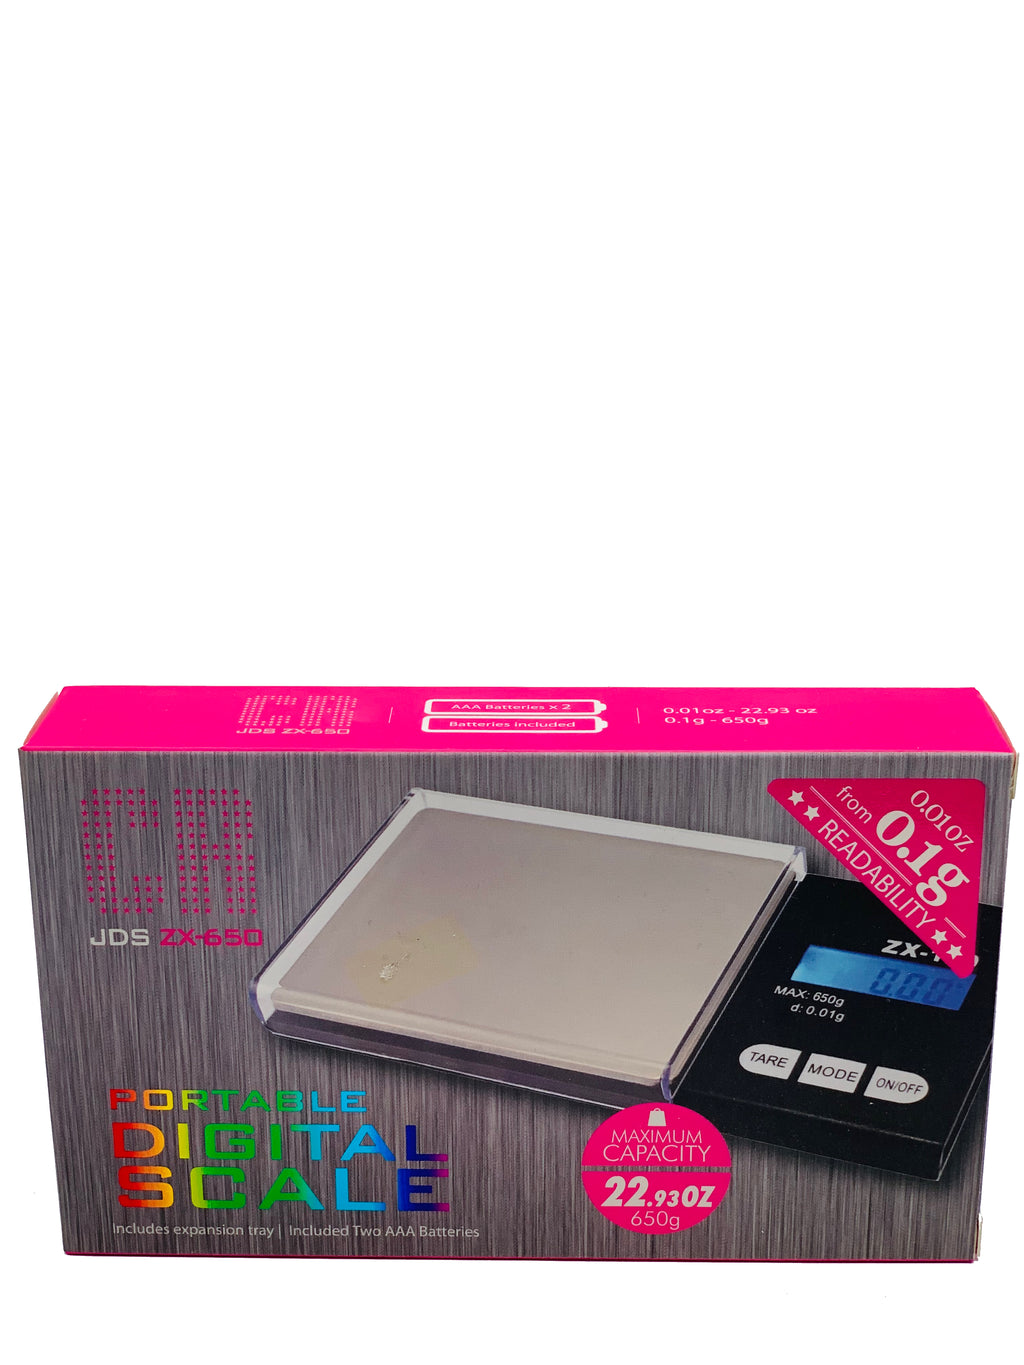 CR DIGITAL SCALE JDS ZX-650 0.1G